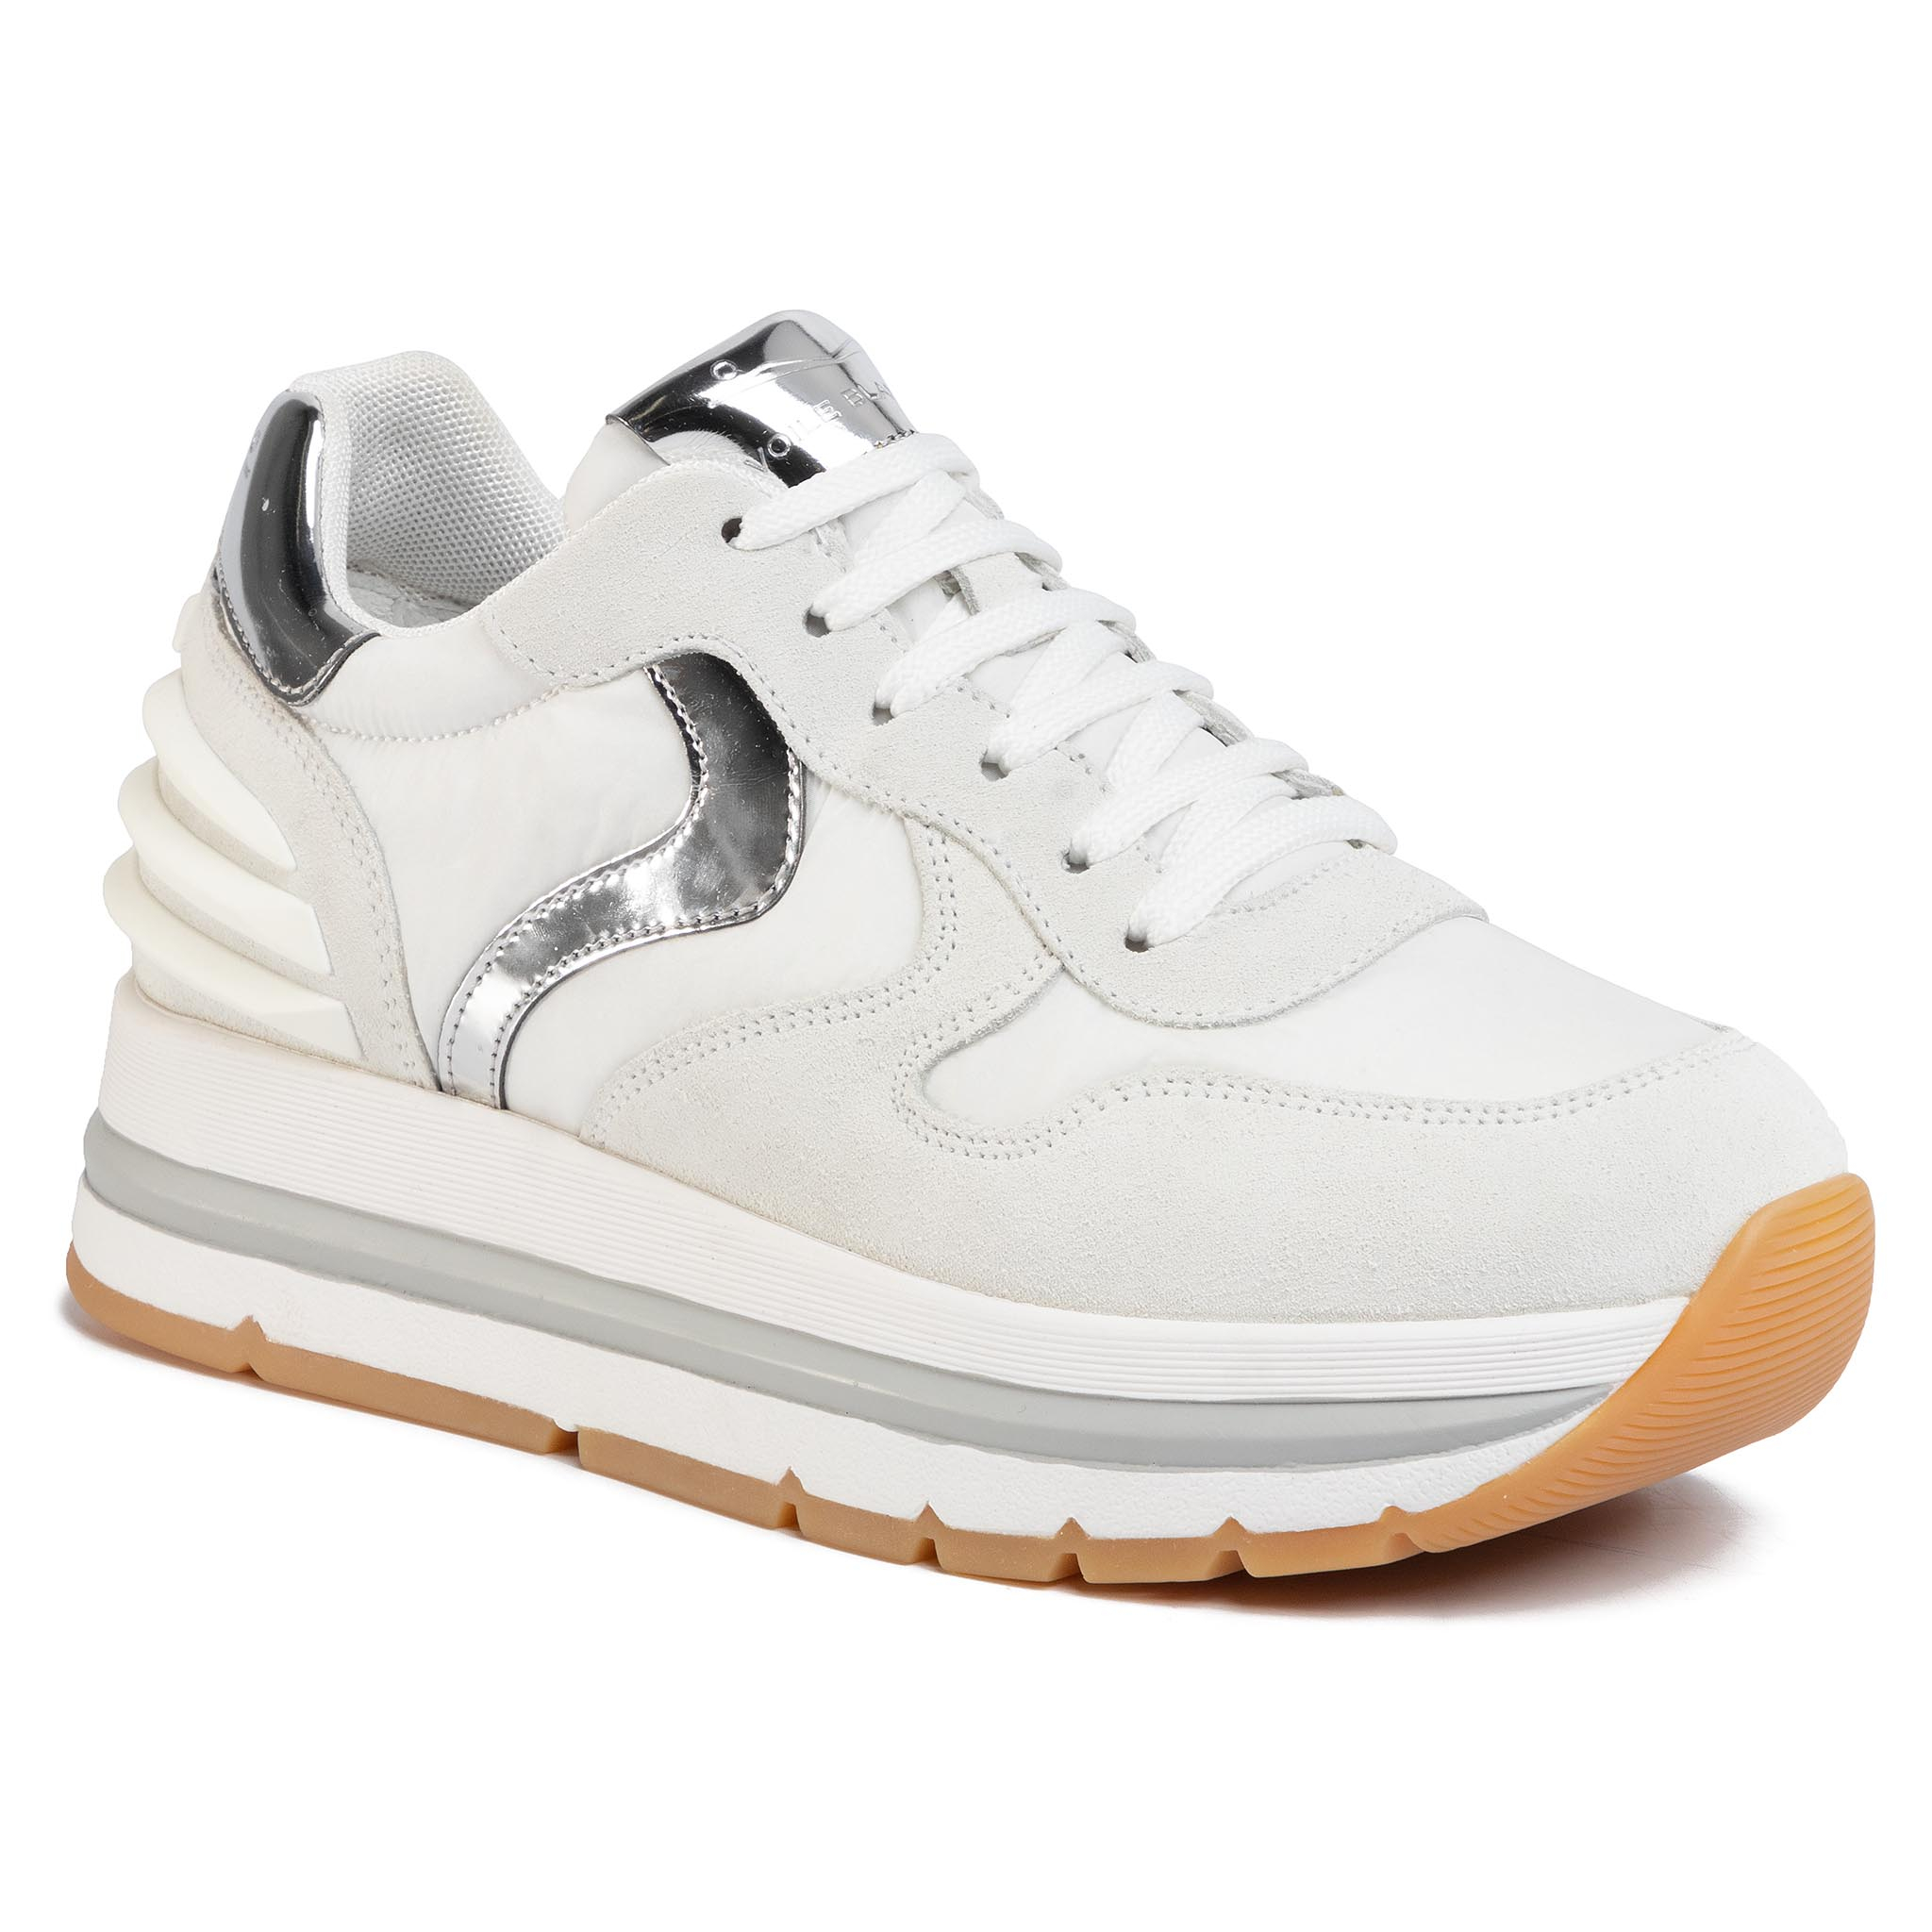 Sneakers VOILE BLANCHE - Maran Power 0012014751.06.1N02 Bianco/Argento